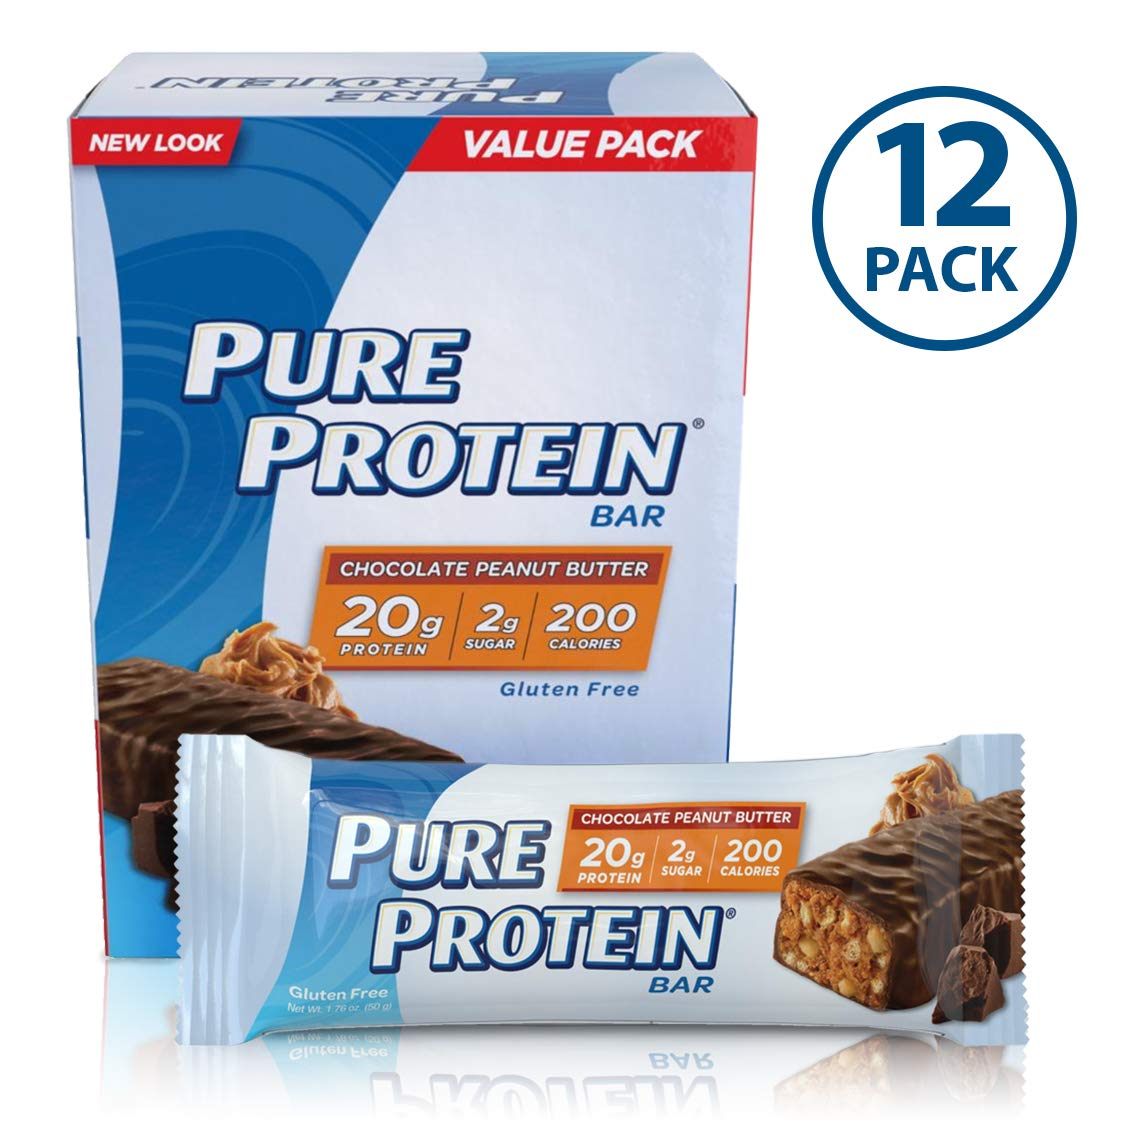 Pure Protein Bars, High Protein, Nutritious Snacks to Support Energy, Low Sugar, Gluten Free, Chocolate Peanut Butter, 1.76oz, 12 Pack by Pure Protein